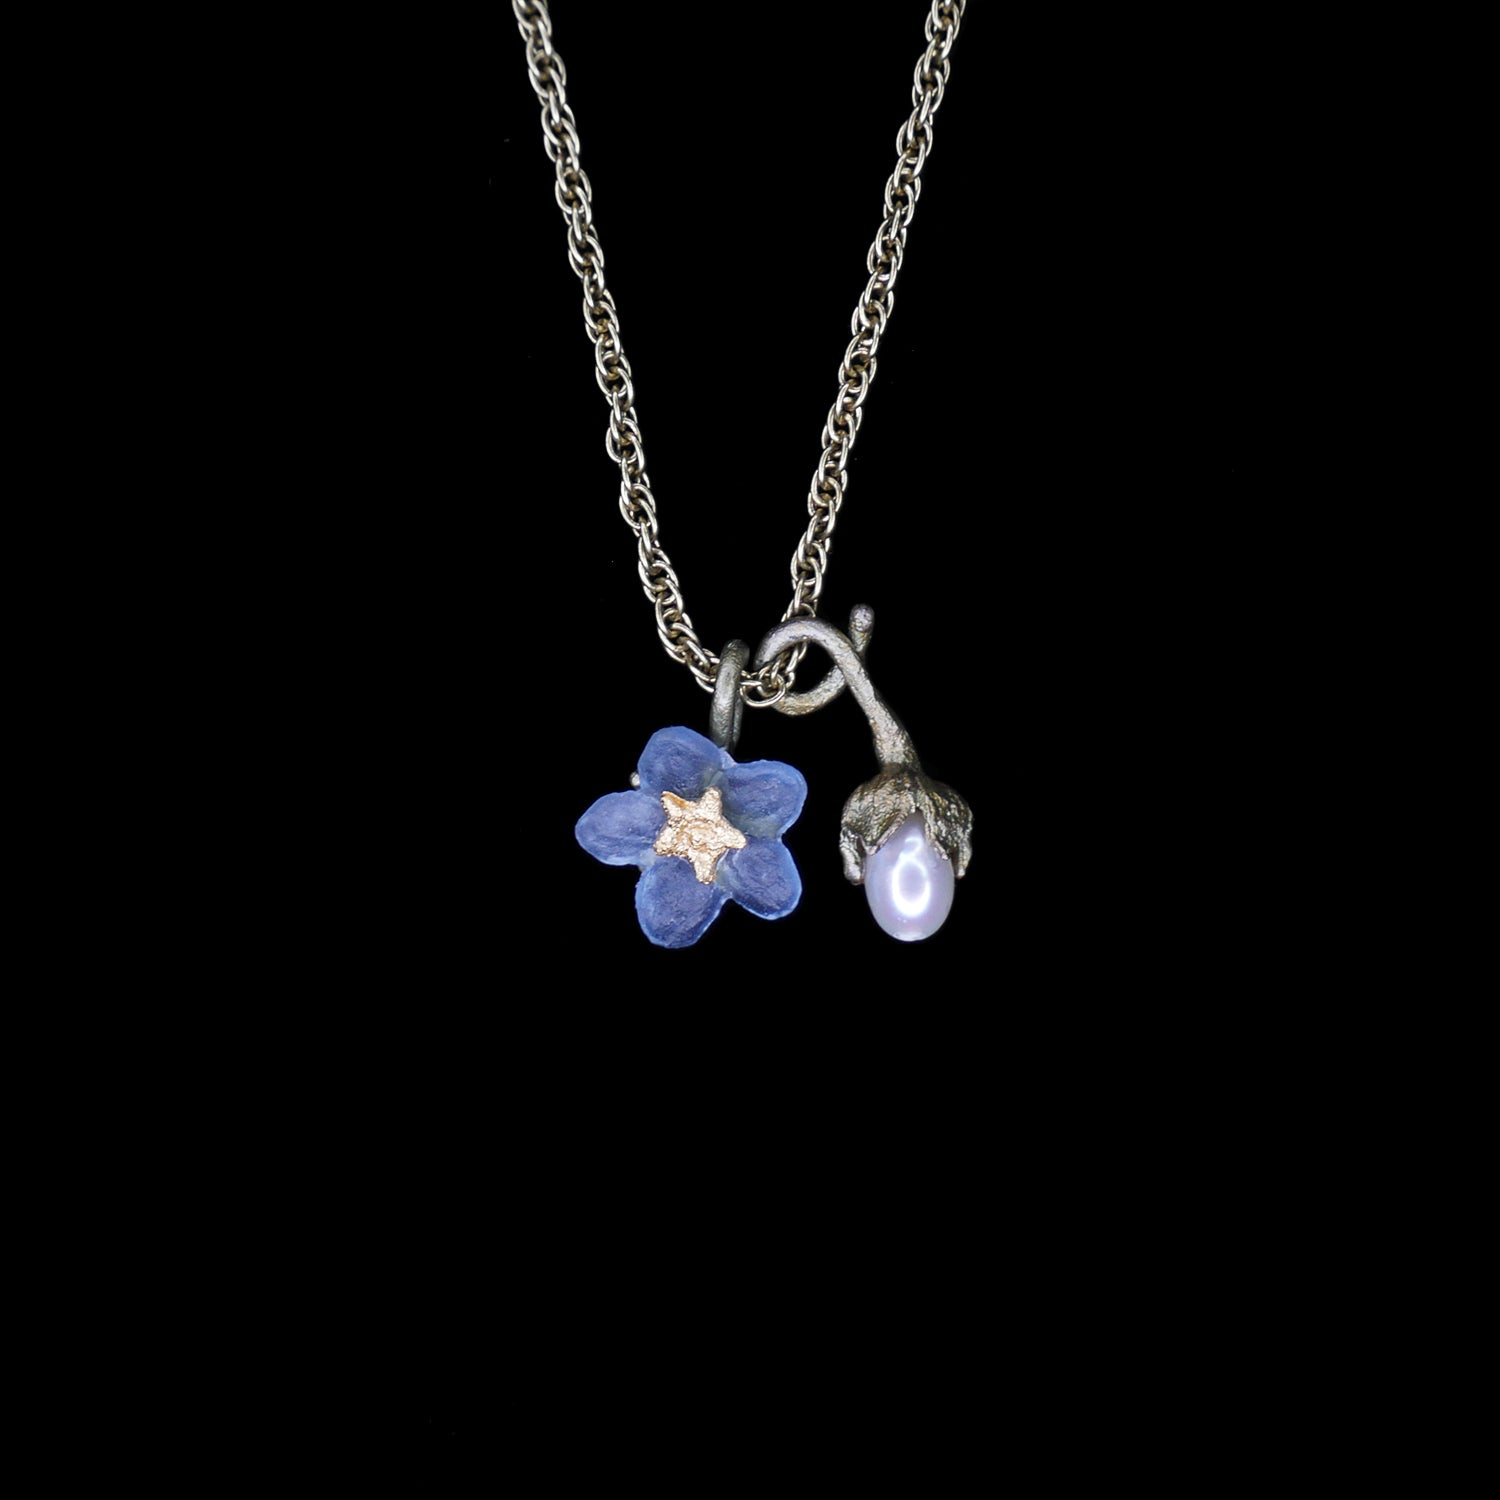 Forget Me Not Pendant - Petite Flower